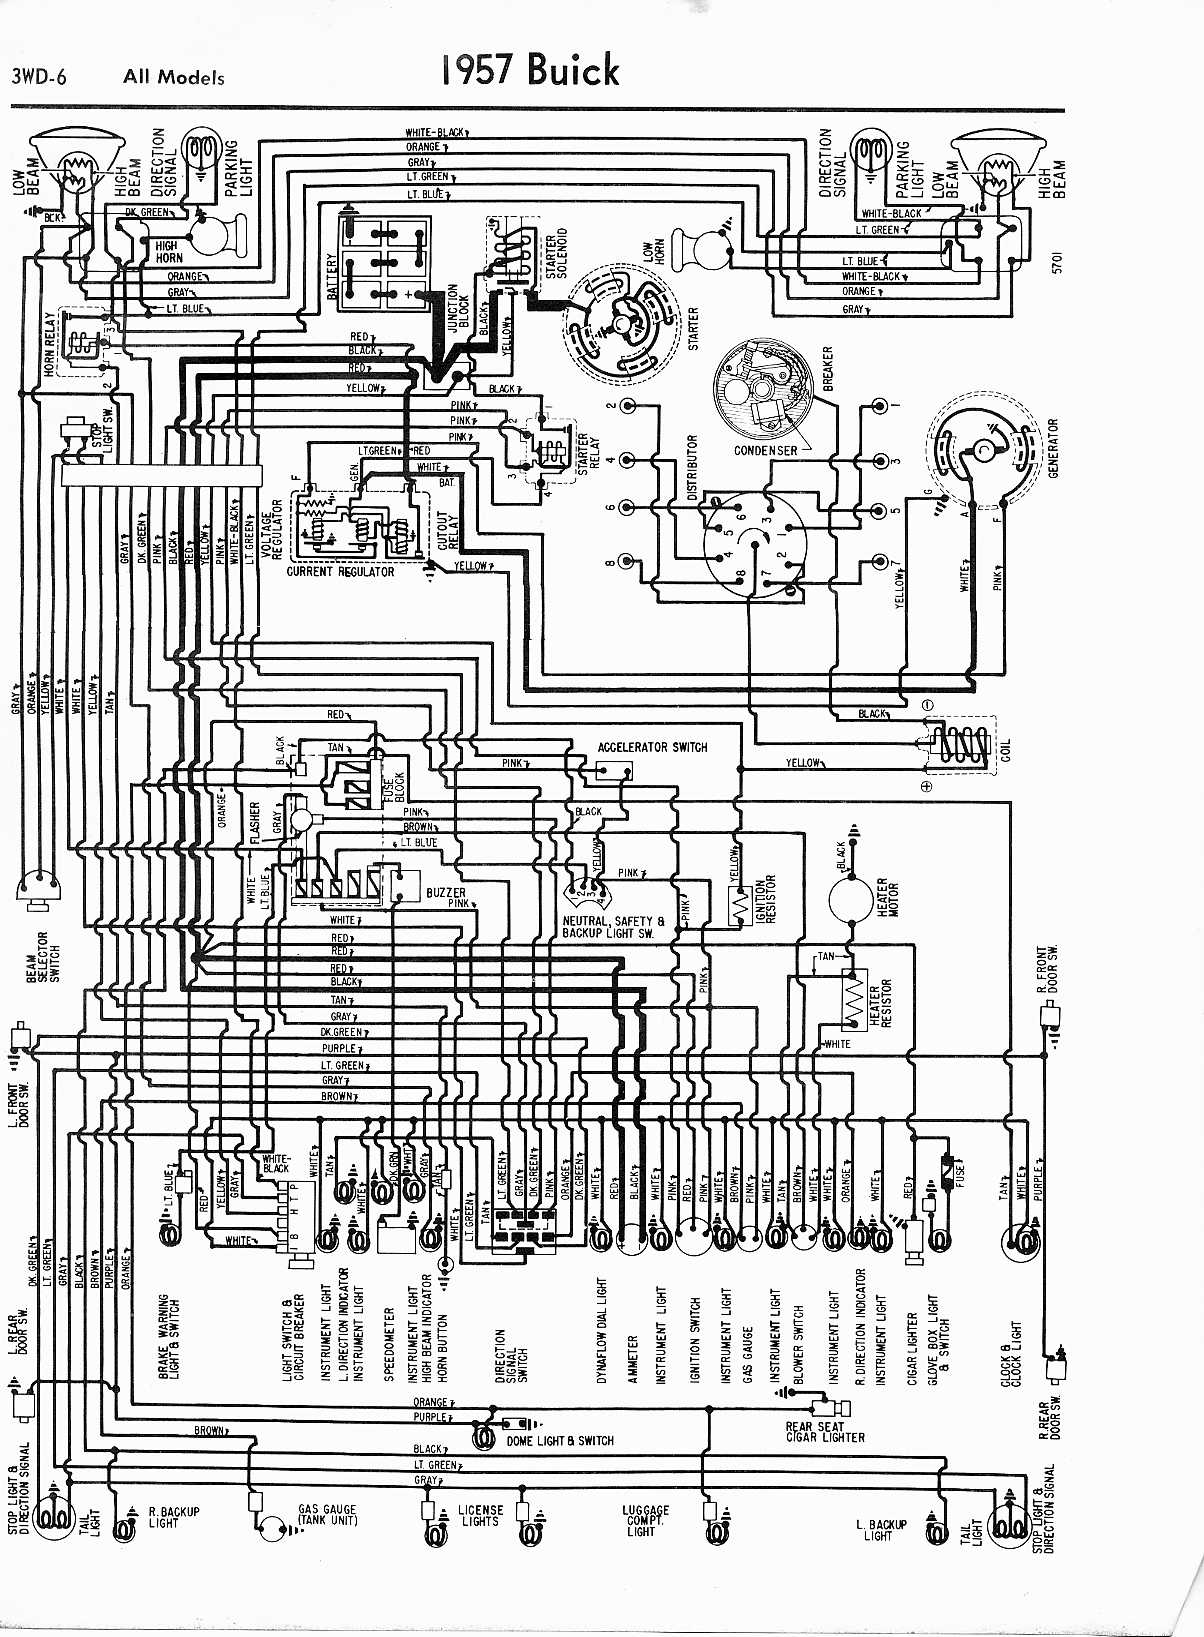 1957 buick wiring diagram 1957 wiring diagrams online buick wiring diagrams 1957 1965